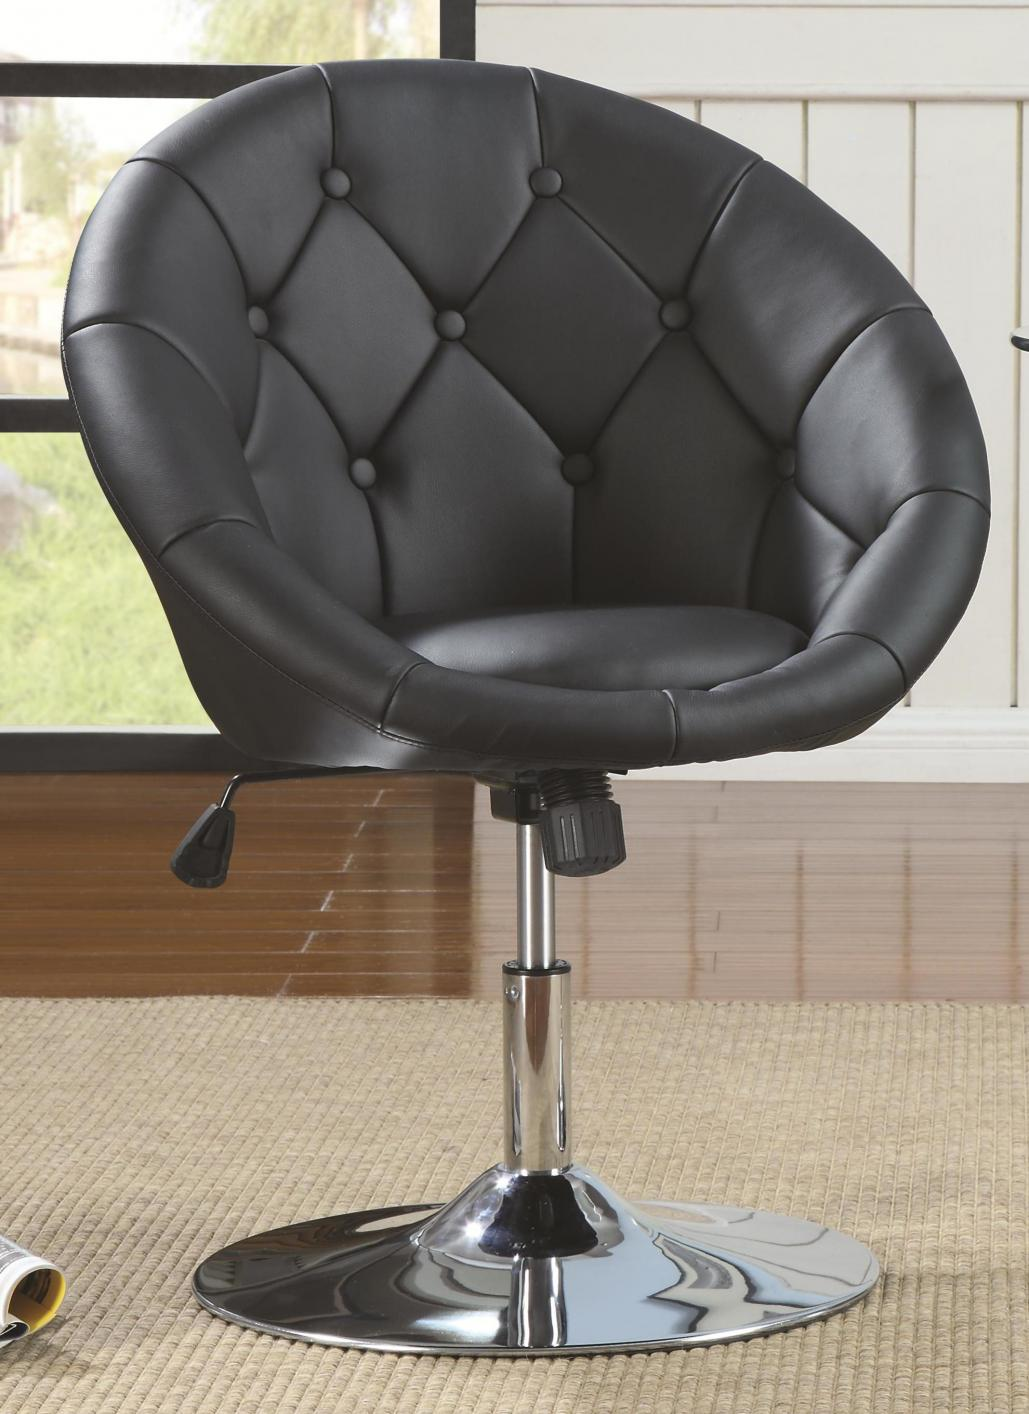 Black Swivel Chair Black Metal Swivel Chair Steal A Sofa Furniture Outlet